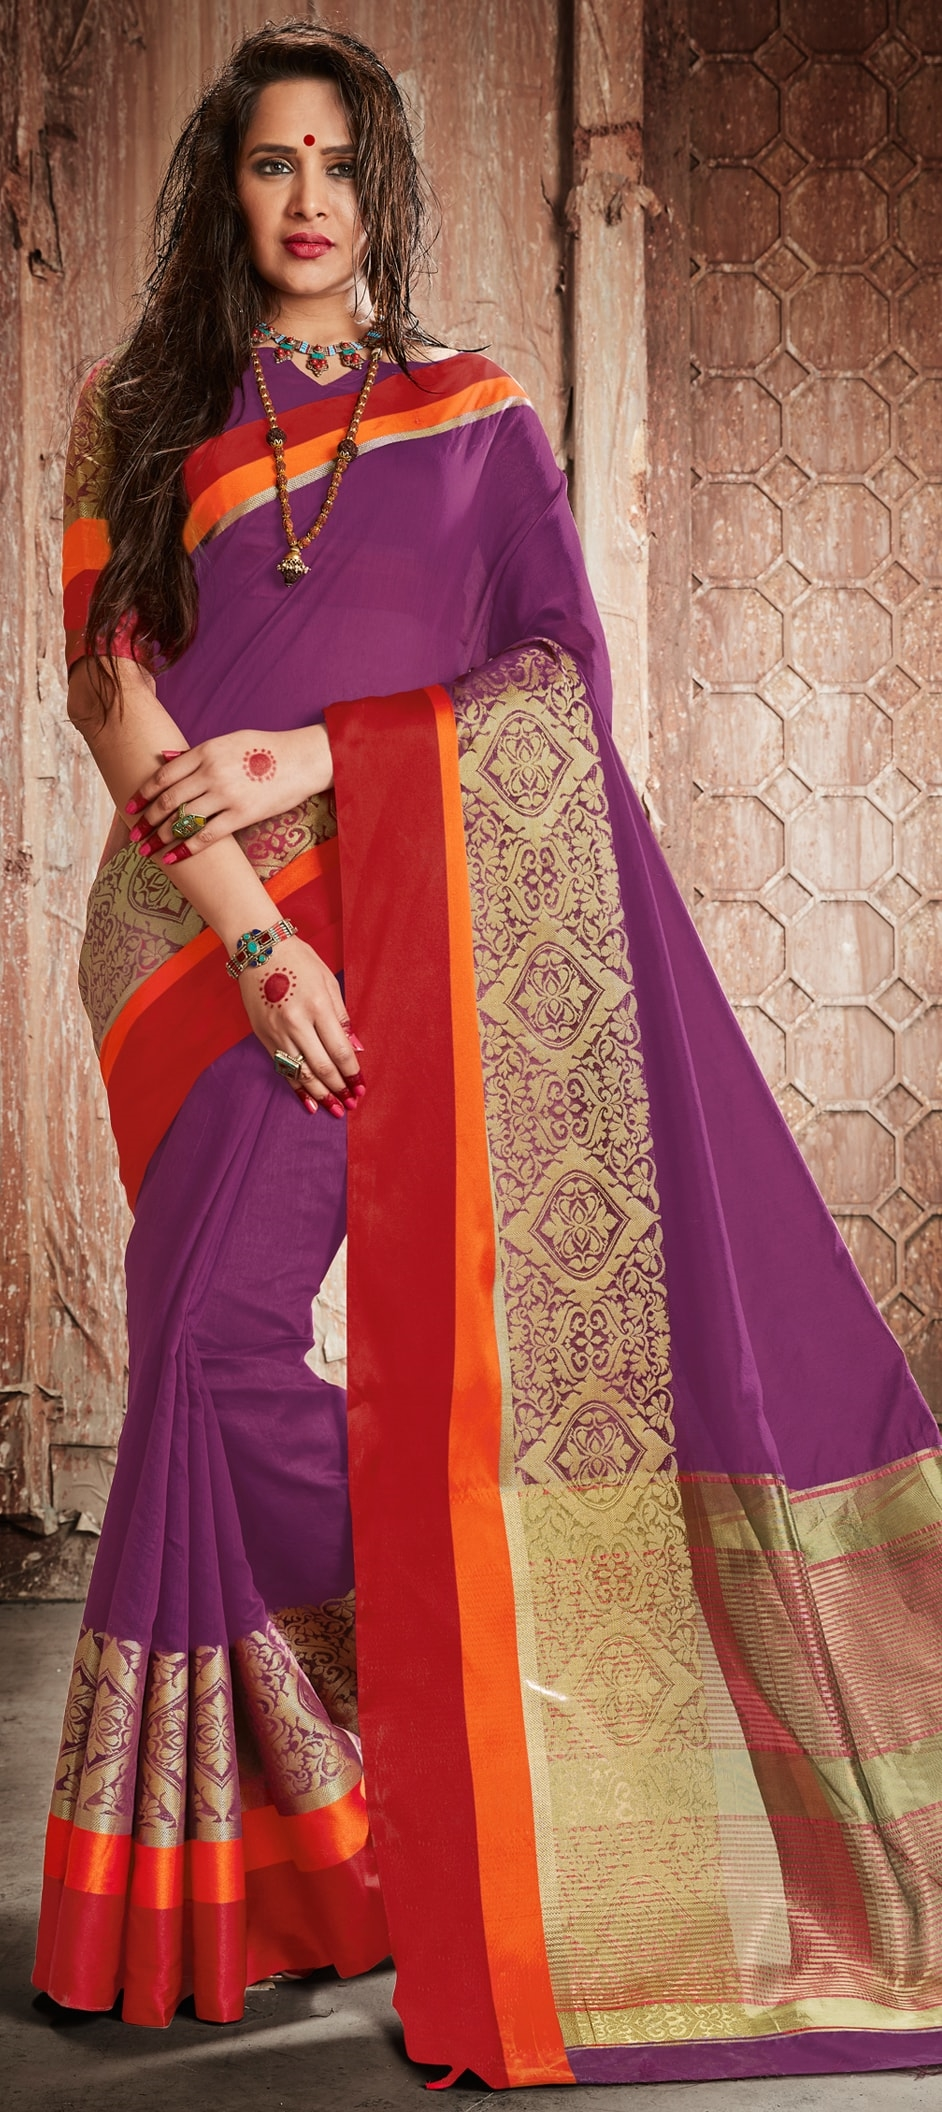 773723: Purple and Violet color family Party Wear Sarees with ...